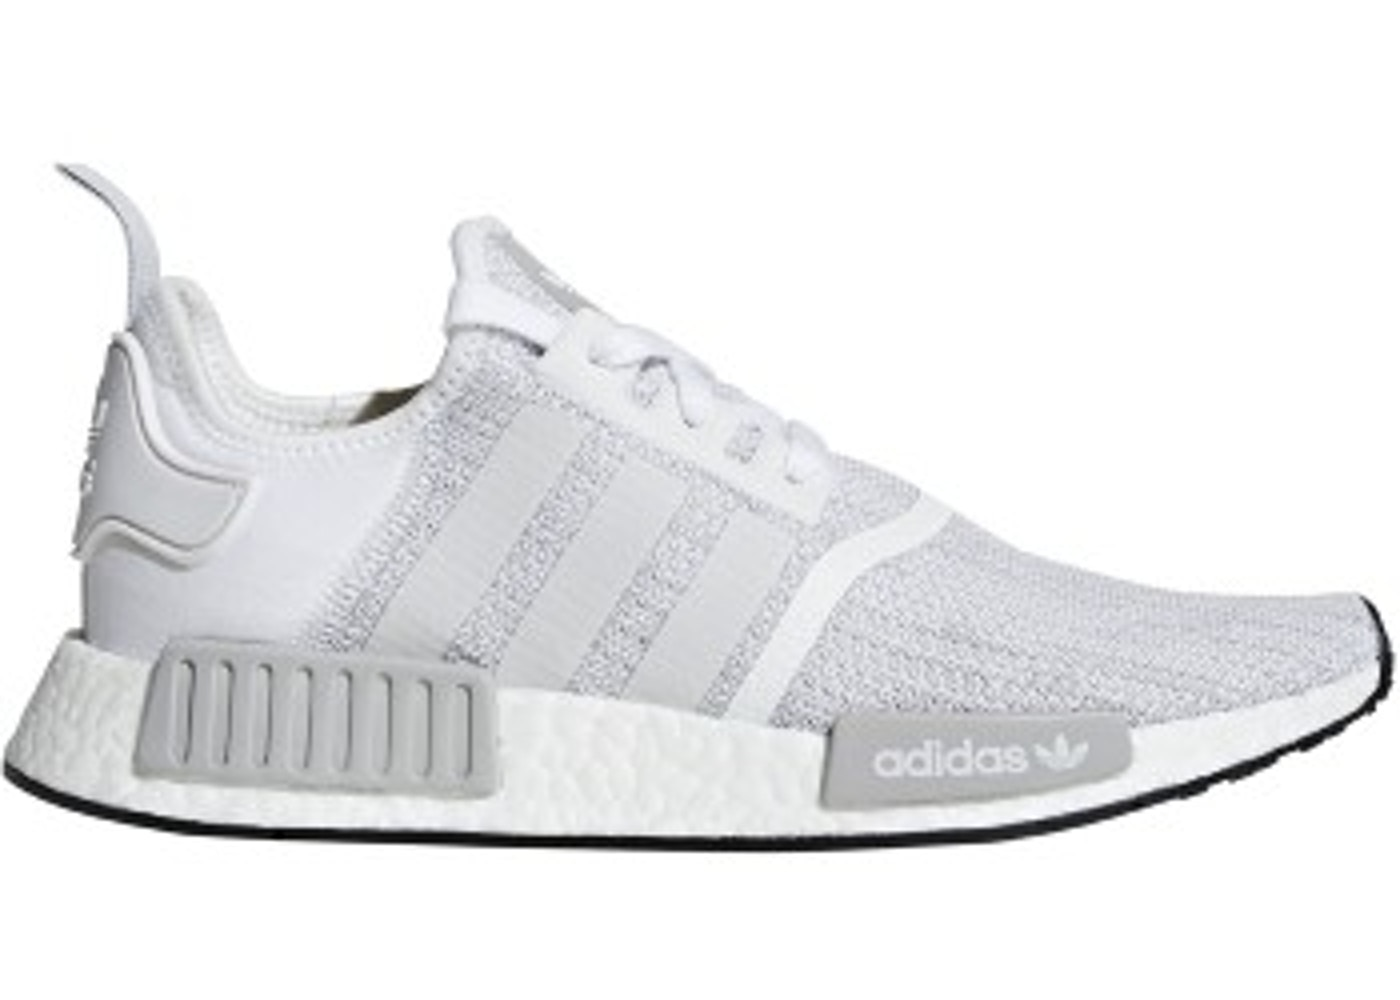 outlet store e2b1b 9c5bd 2018 mens adidas nmd r1 blizzard